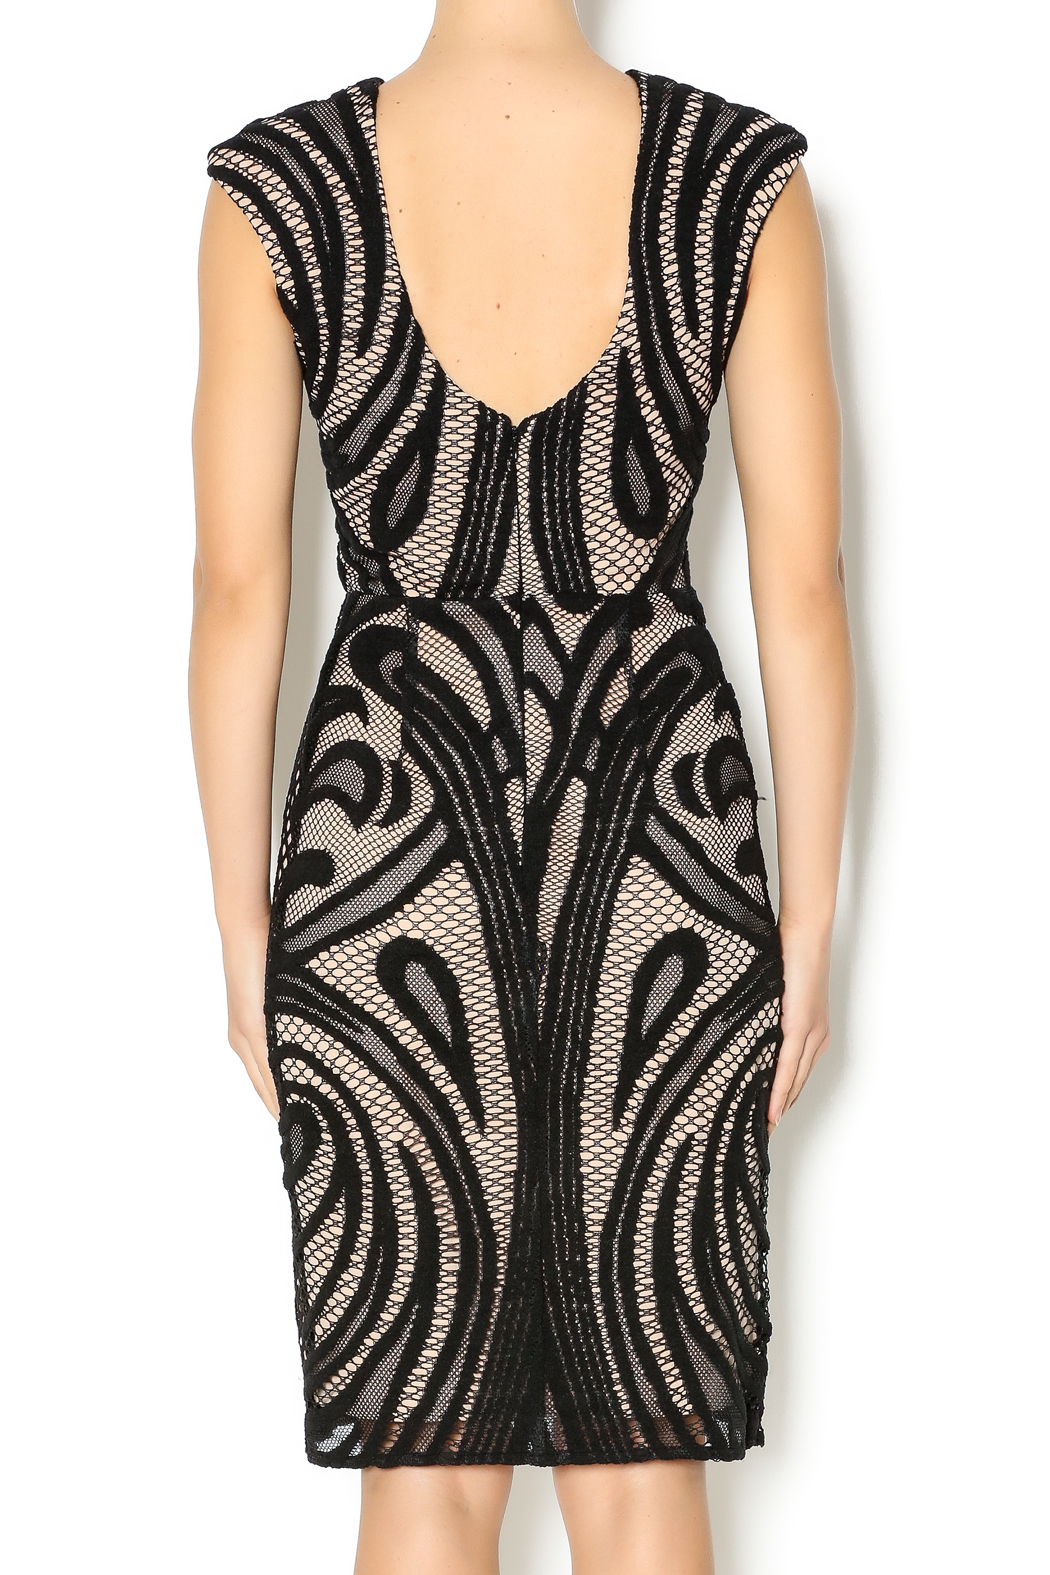 Lumiere Black Lace Dress - Back Cropped Image